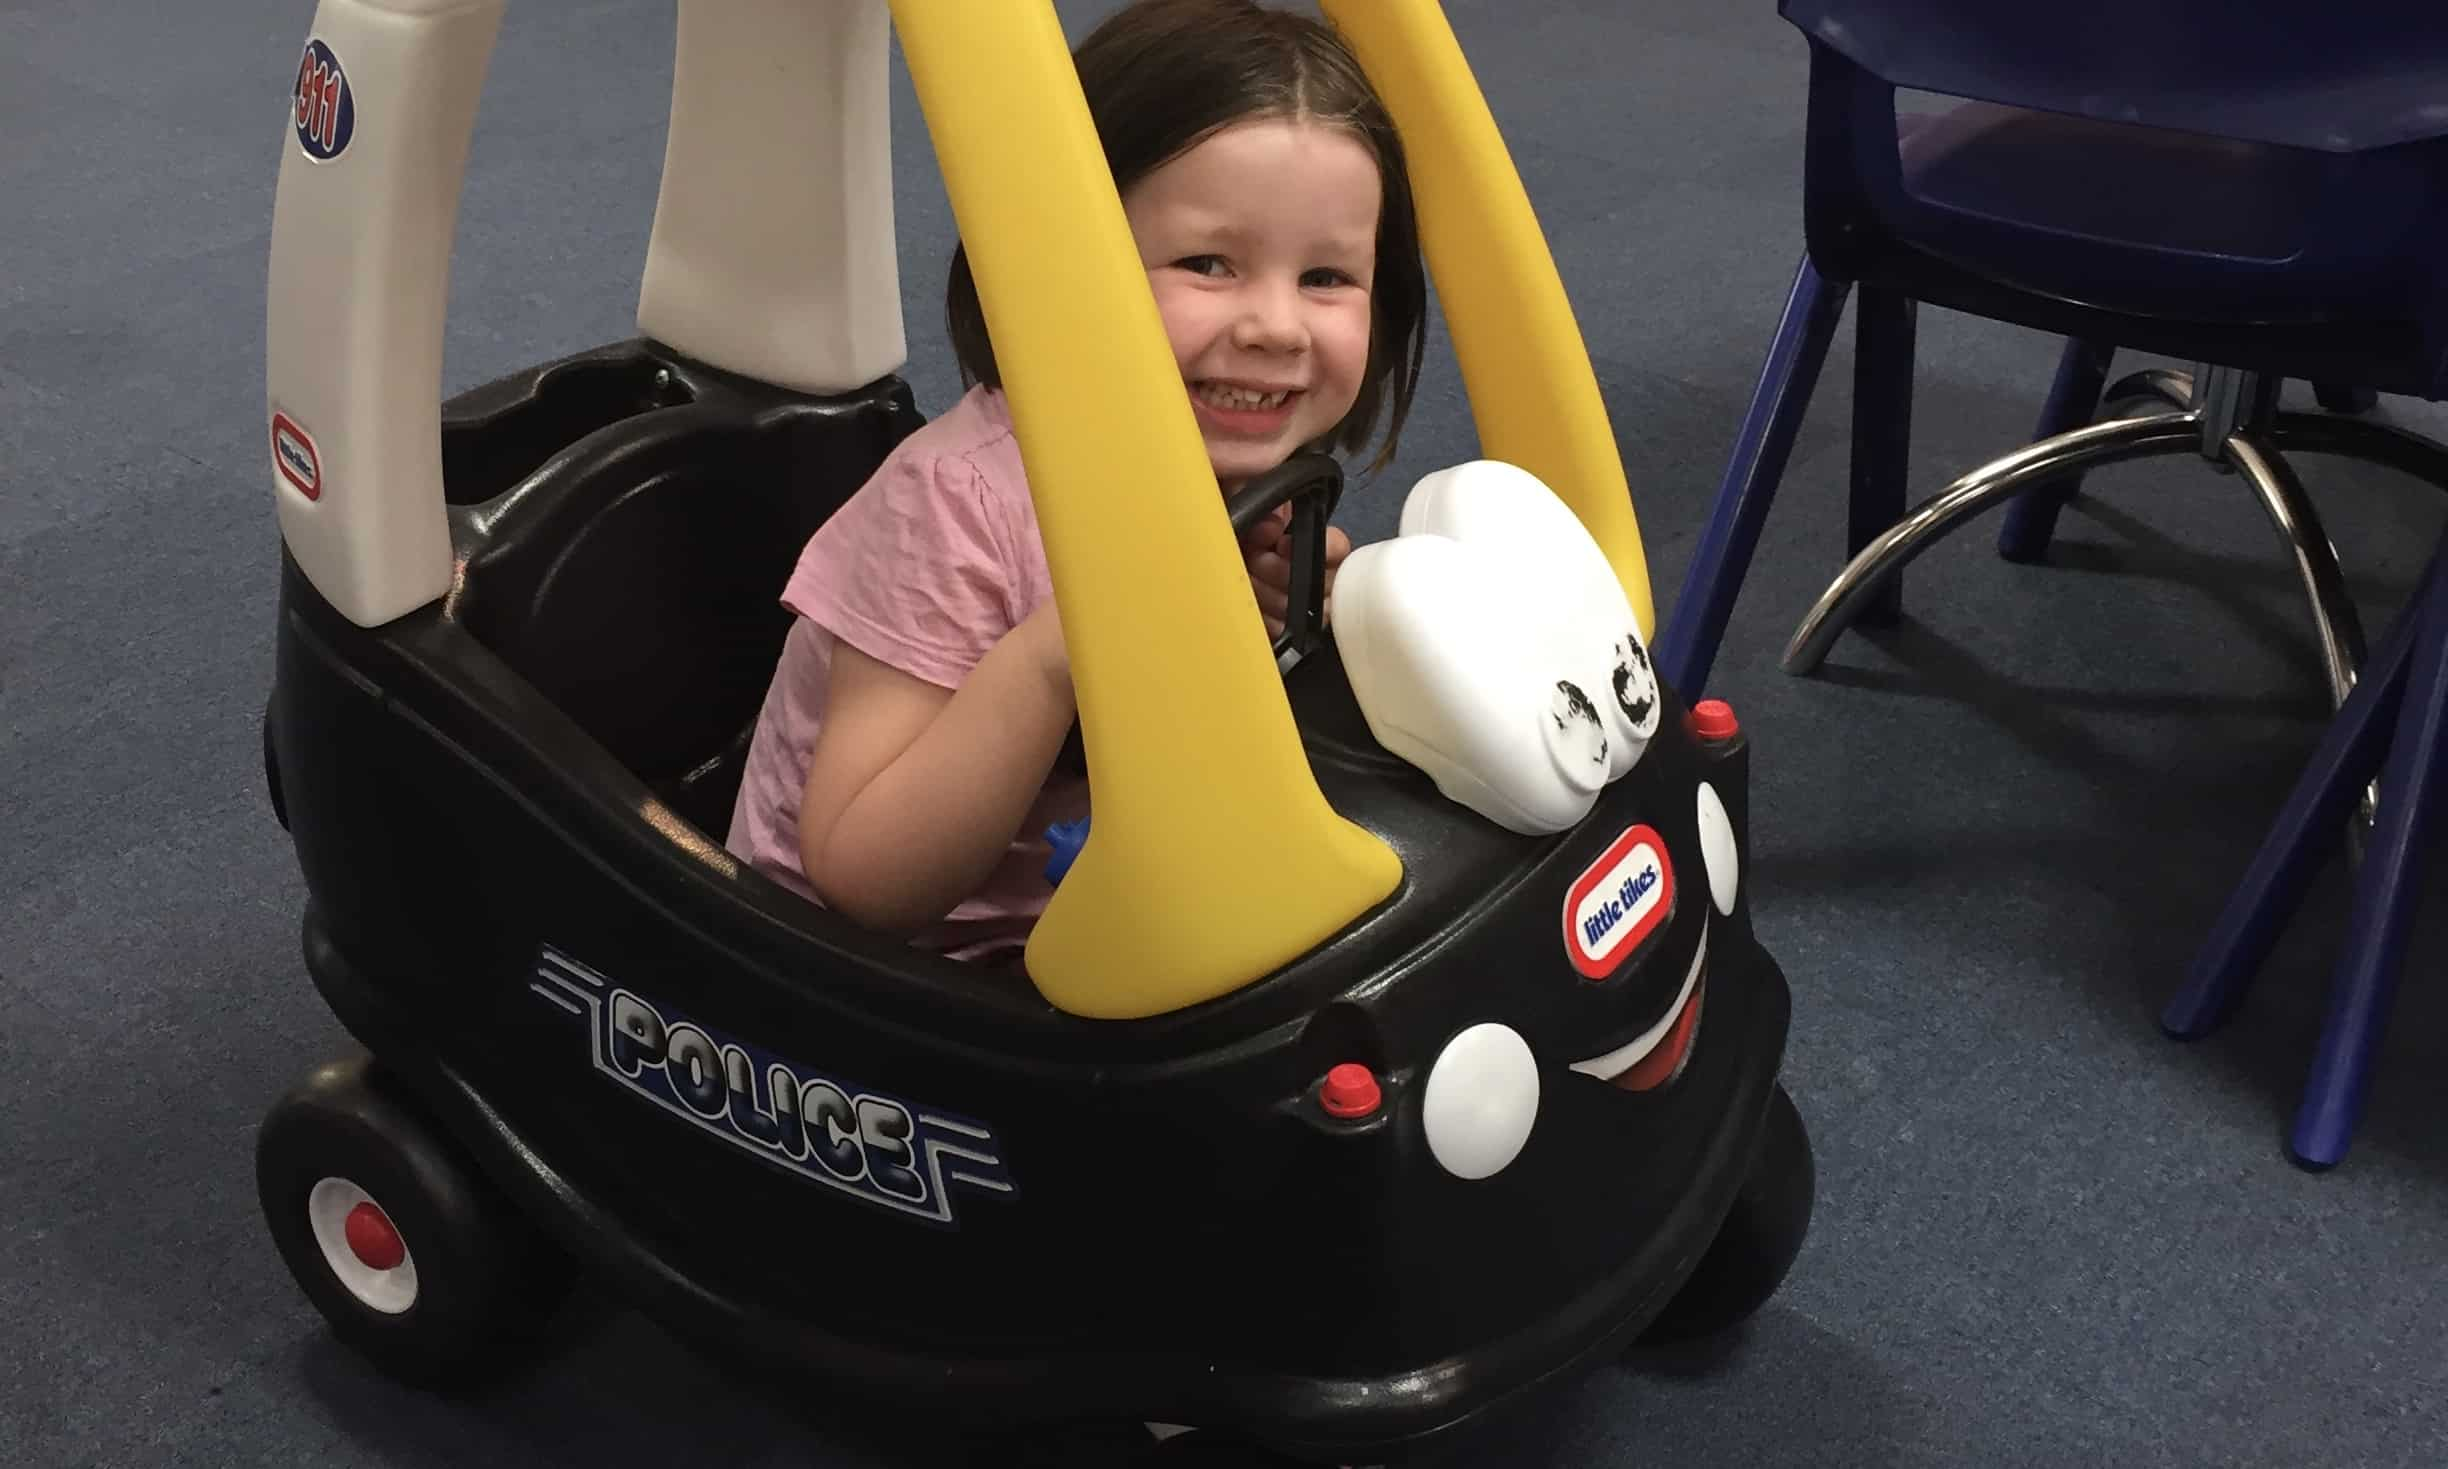 Riding a Cosy Coupe at Mace Playce Chelmsford